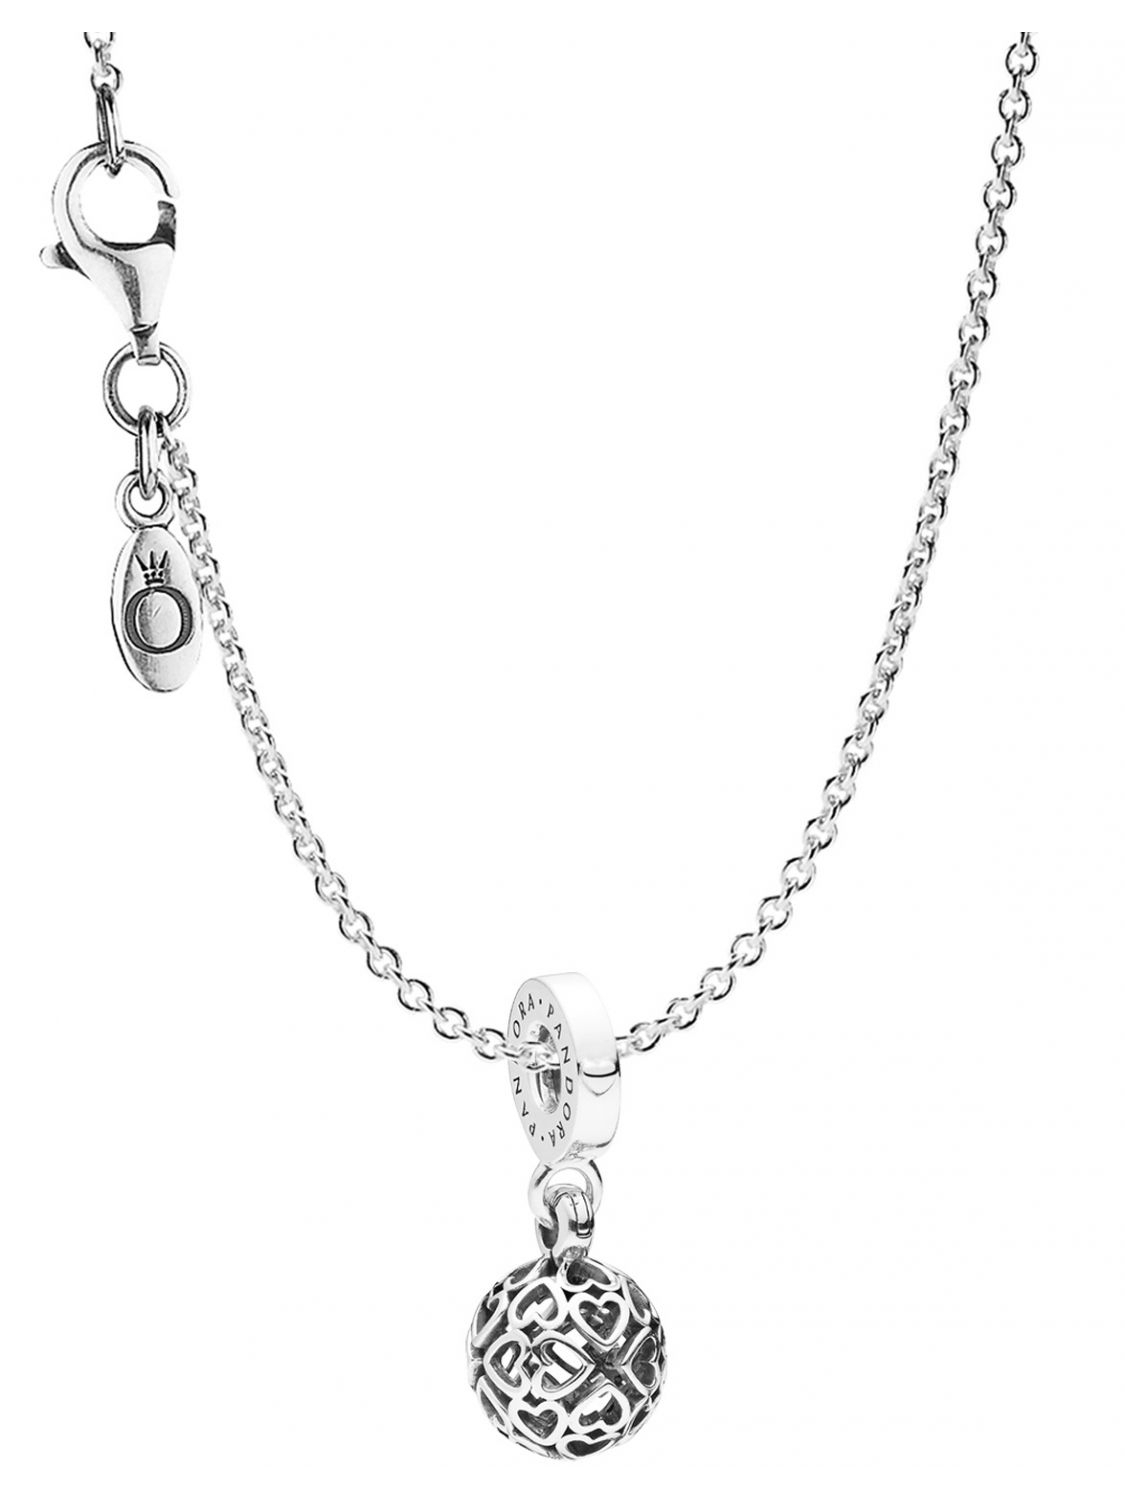 Pandora 08859 Necklace With Pendant Harmonious Hearts With Regard To 2019 Hearts Of Pandora Necklaces (View 8 of 25)